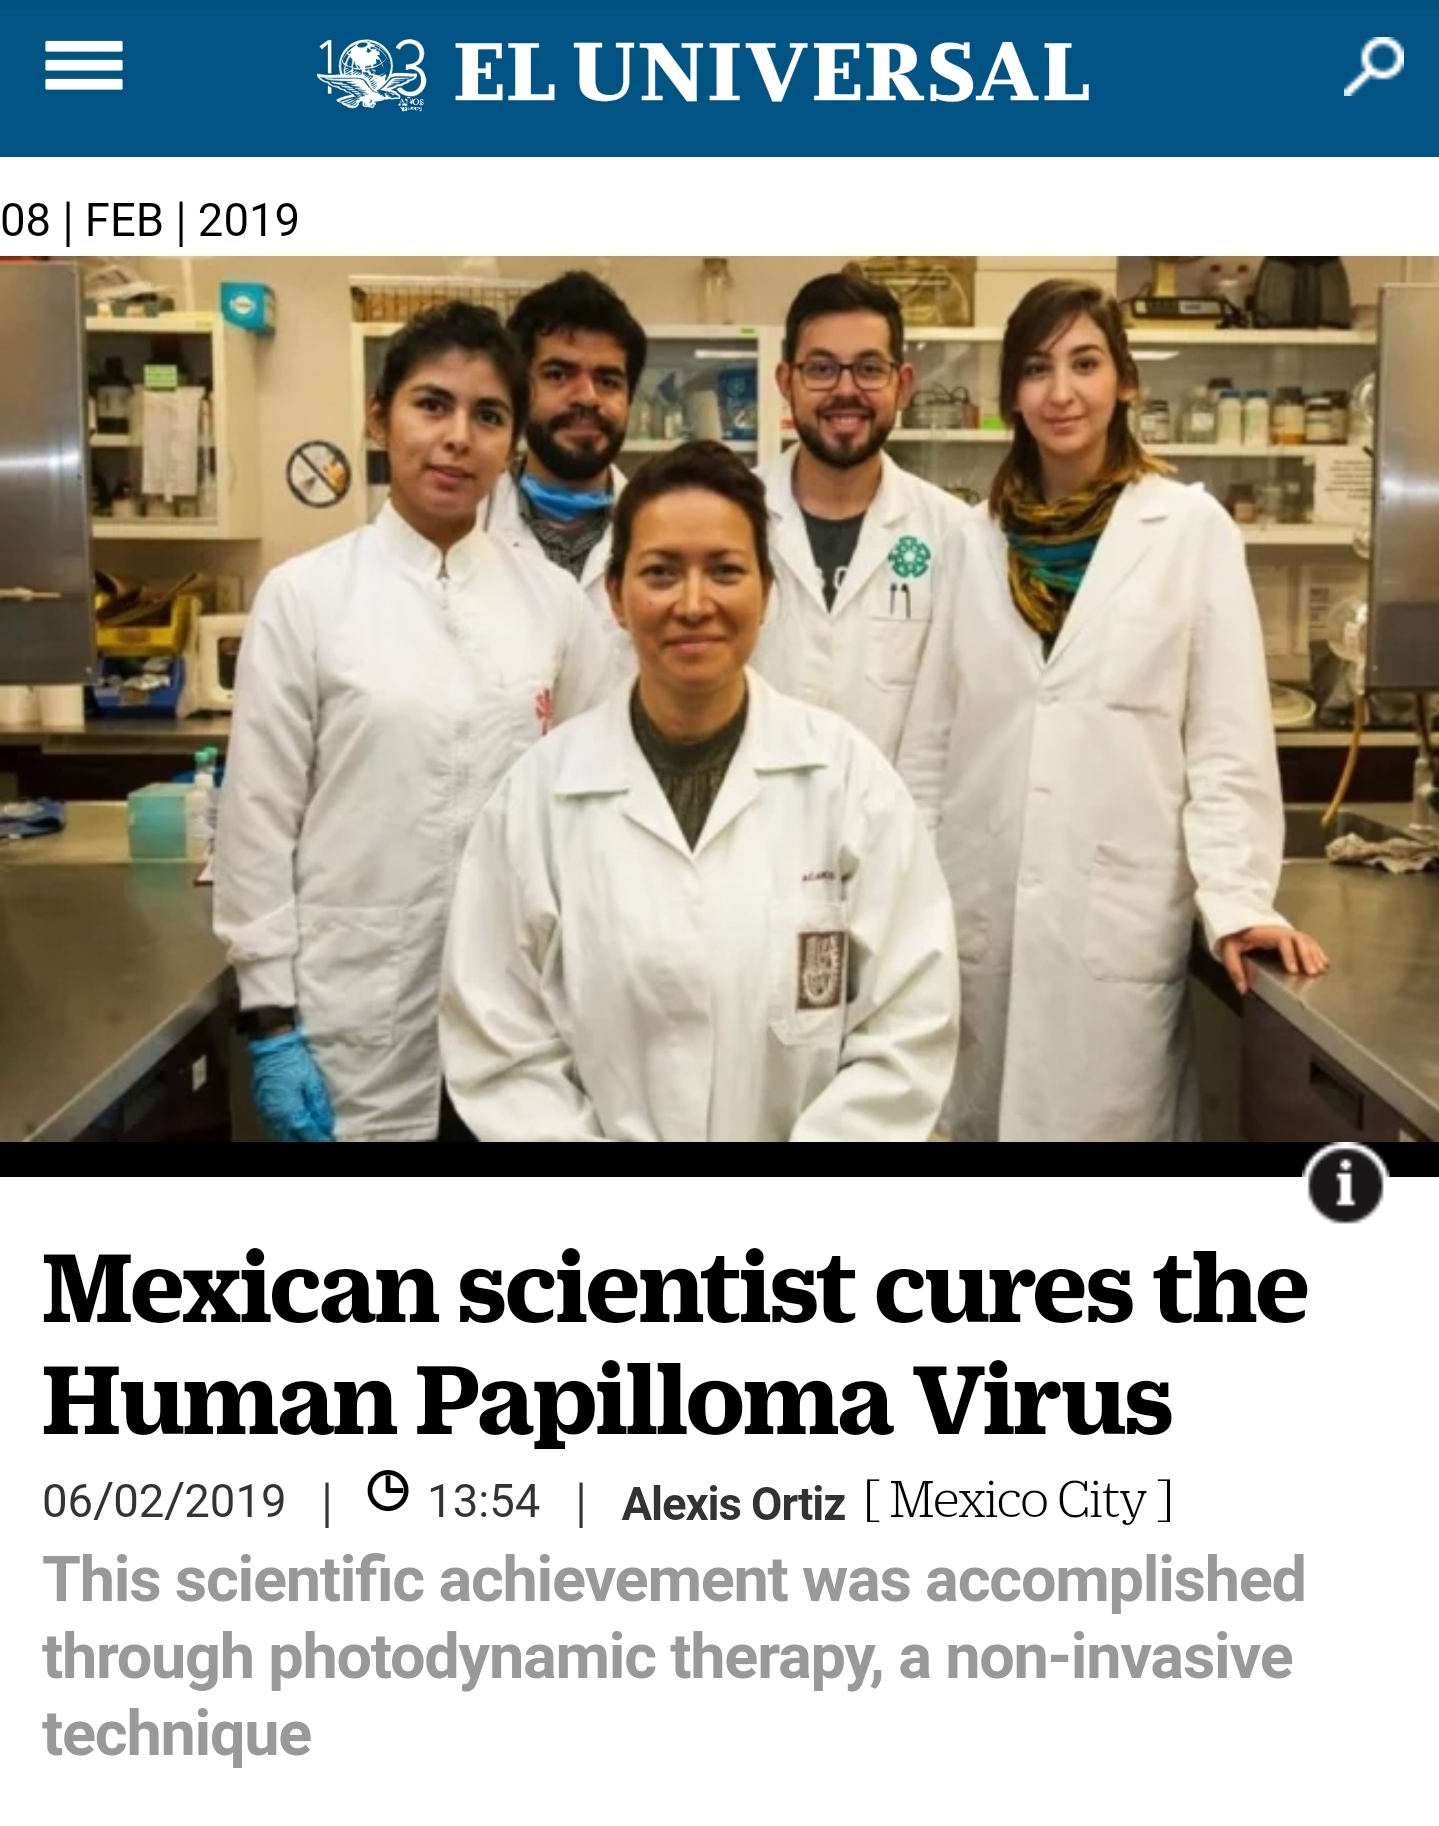 hpv cure mexican